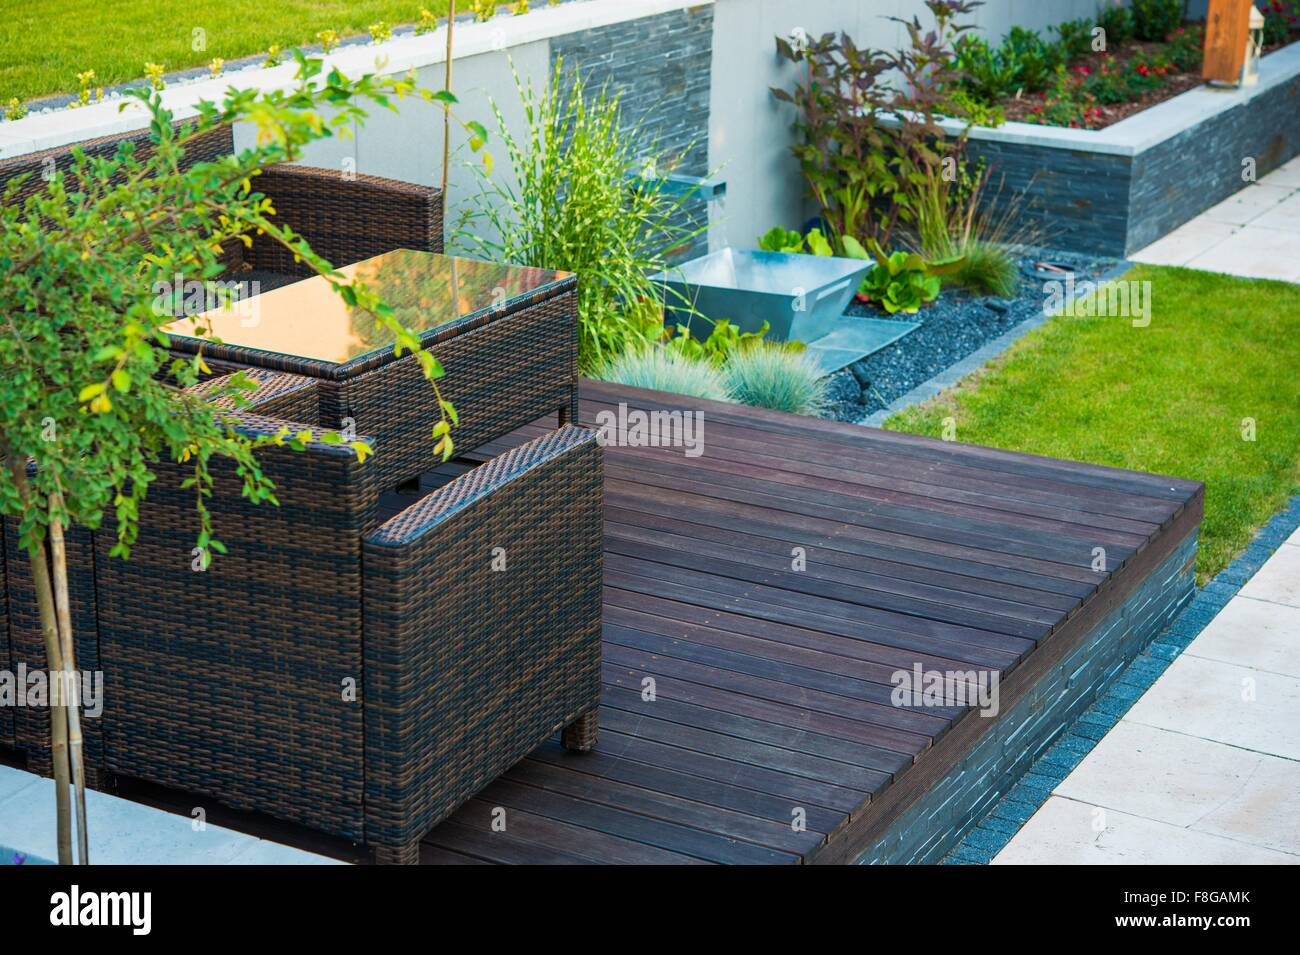 deck plan stockfotos deck plan bilder alamy. Black Bedroom Furniture Sets. Home Design Ideas